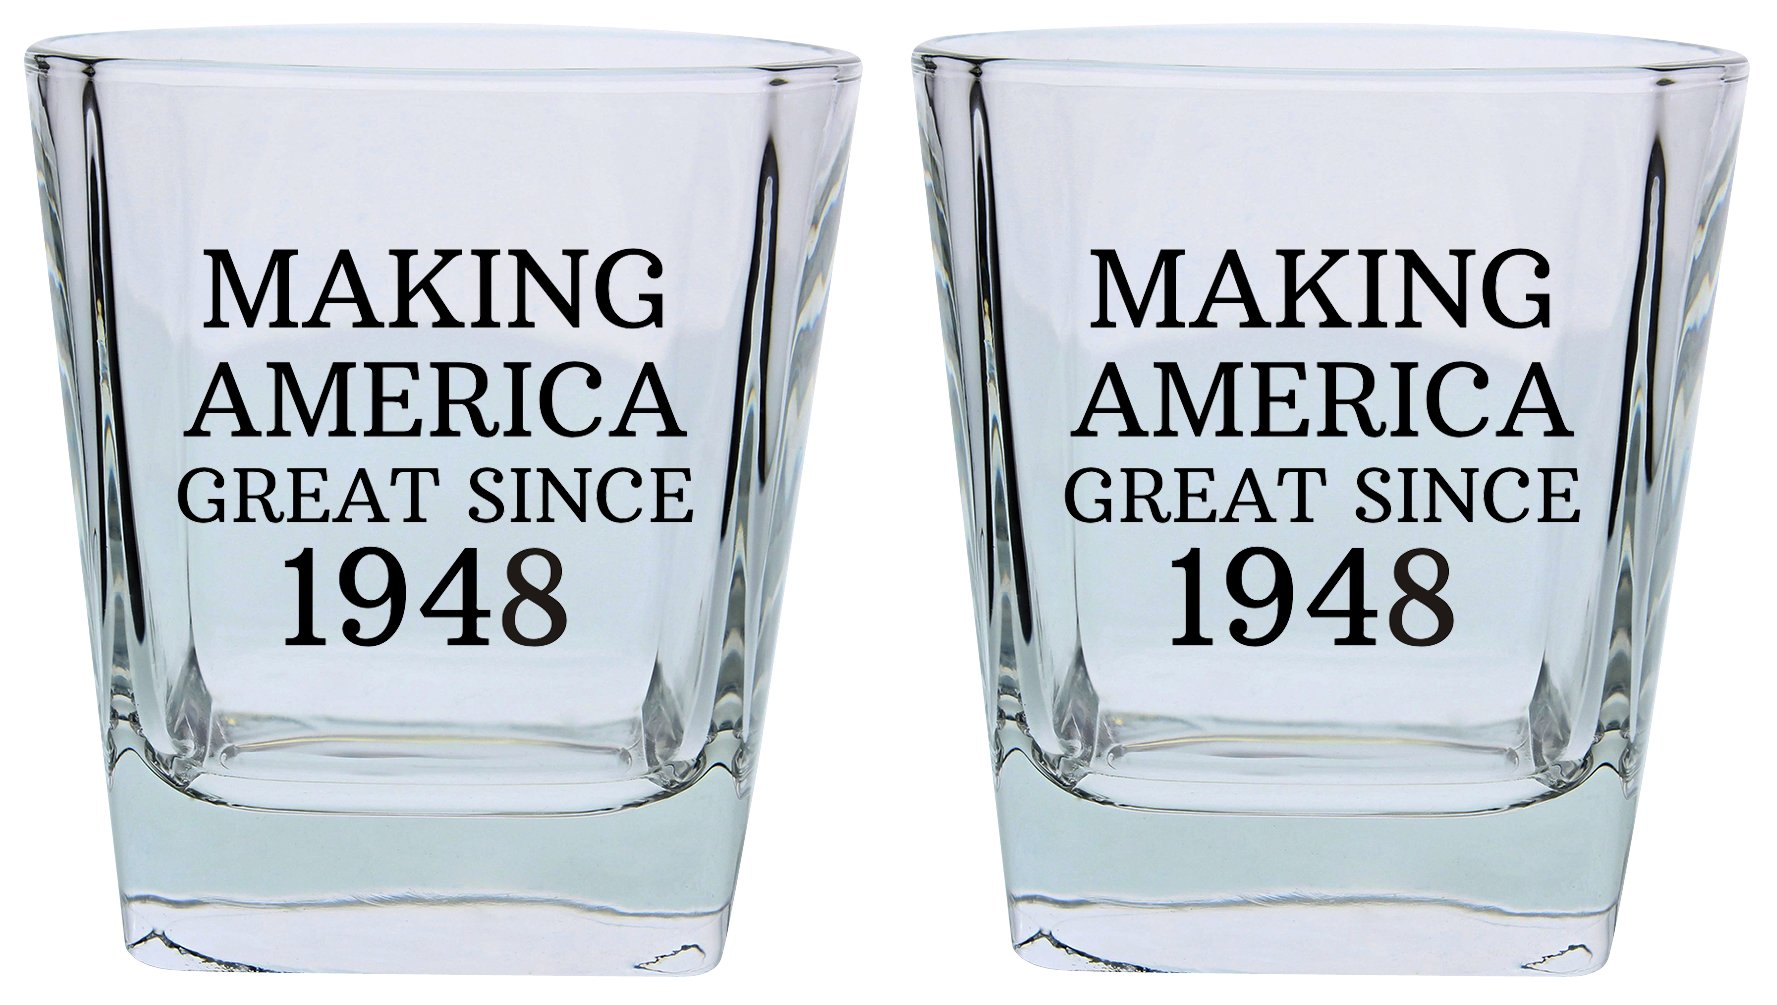 70th Birthday Gifts for Grandpa Grandma Making America Great Since 1948 Republican Conservative 70th Birthday Party Supplies Square Lowball Glasses 2-Pack Square Lowball Tumbler Set Black